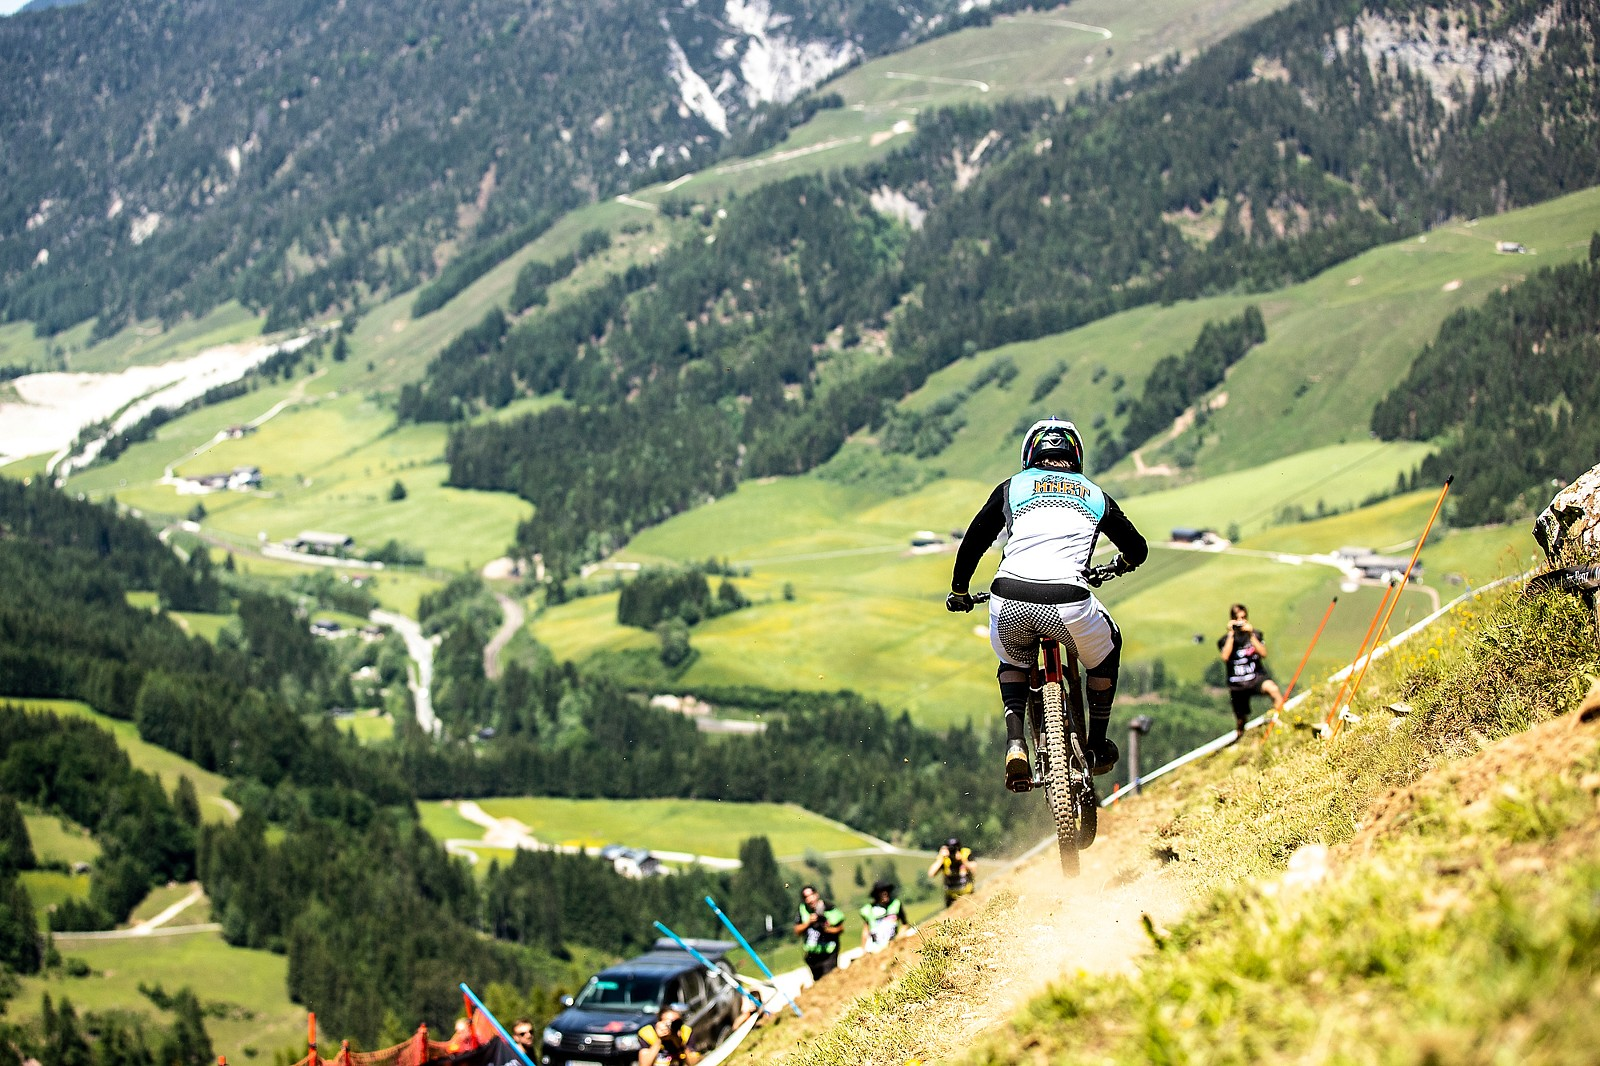 Off-Camber Leogang - Danny Hart 2019 World Cup Downhill Photos - Mountain Biking Pictures - Vital MTB